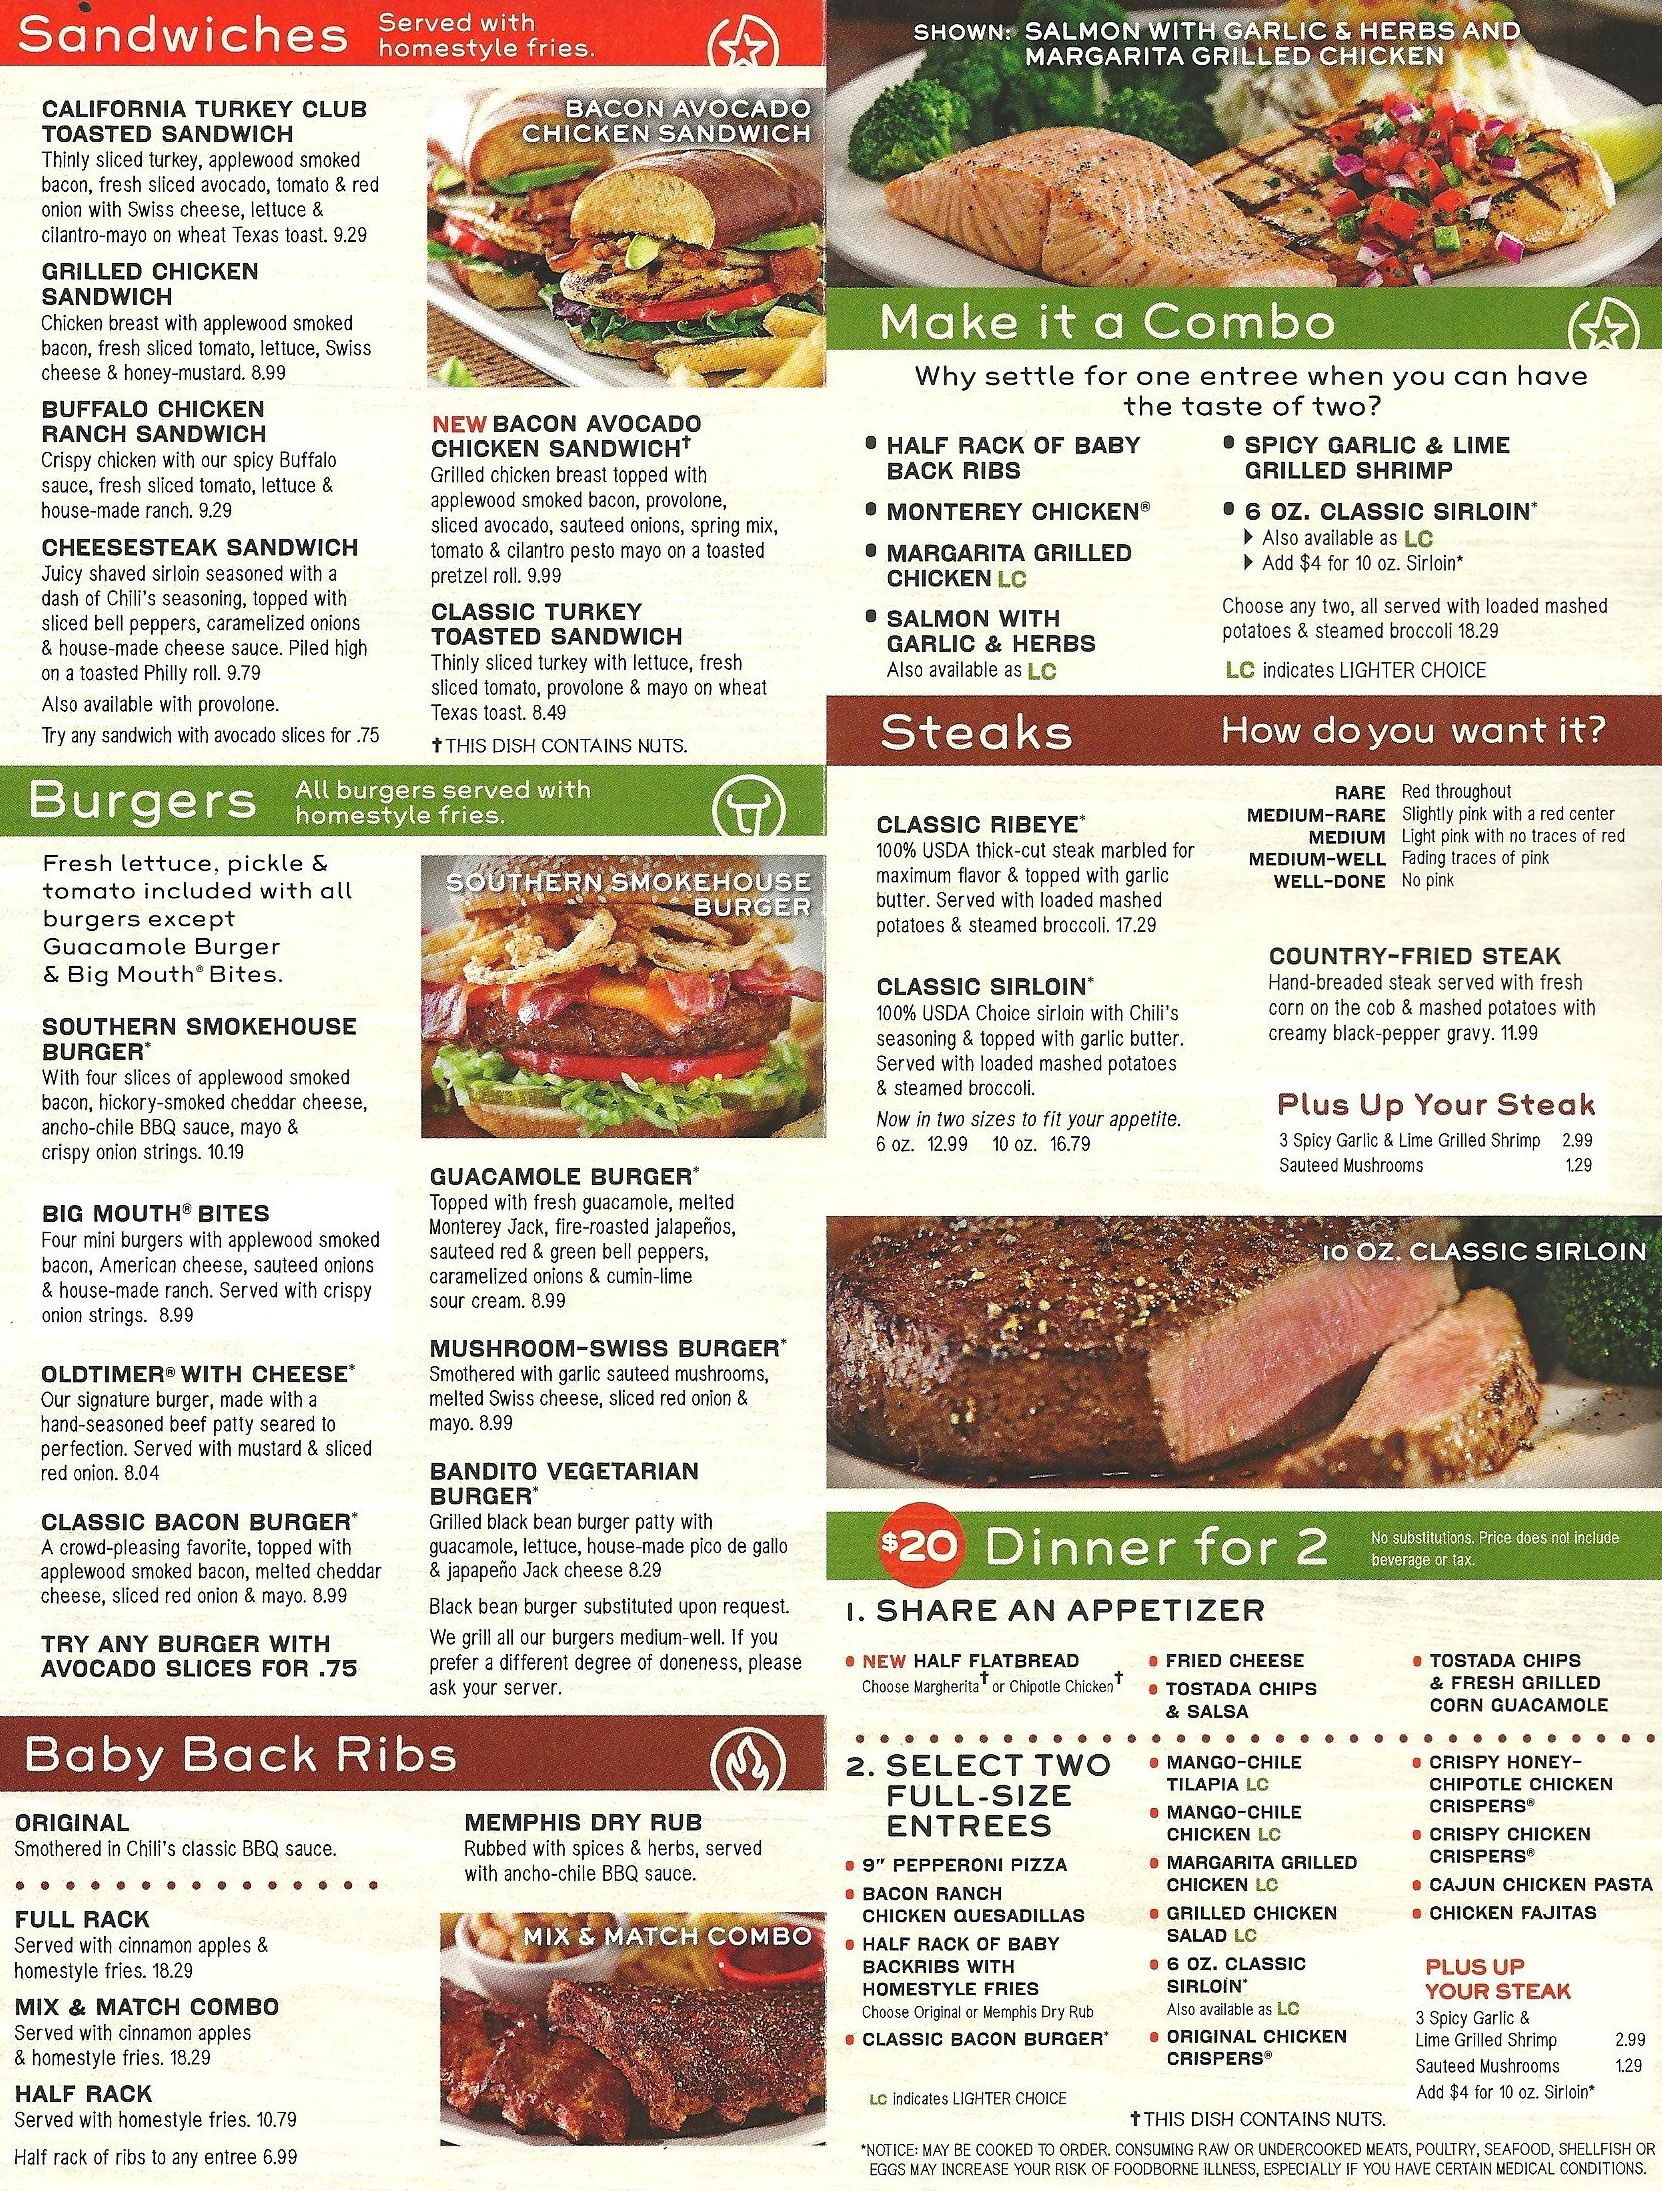 image about Chilis Menu Printable identified as Chilis Menu Image Style and design Enthusiasm Chilis menu